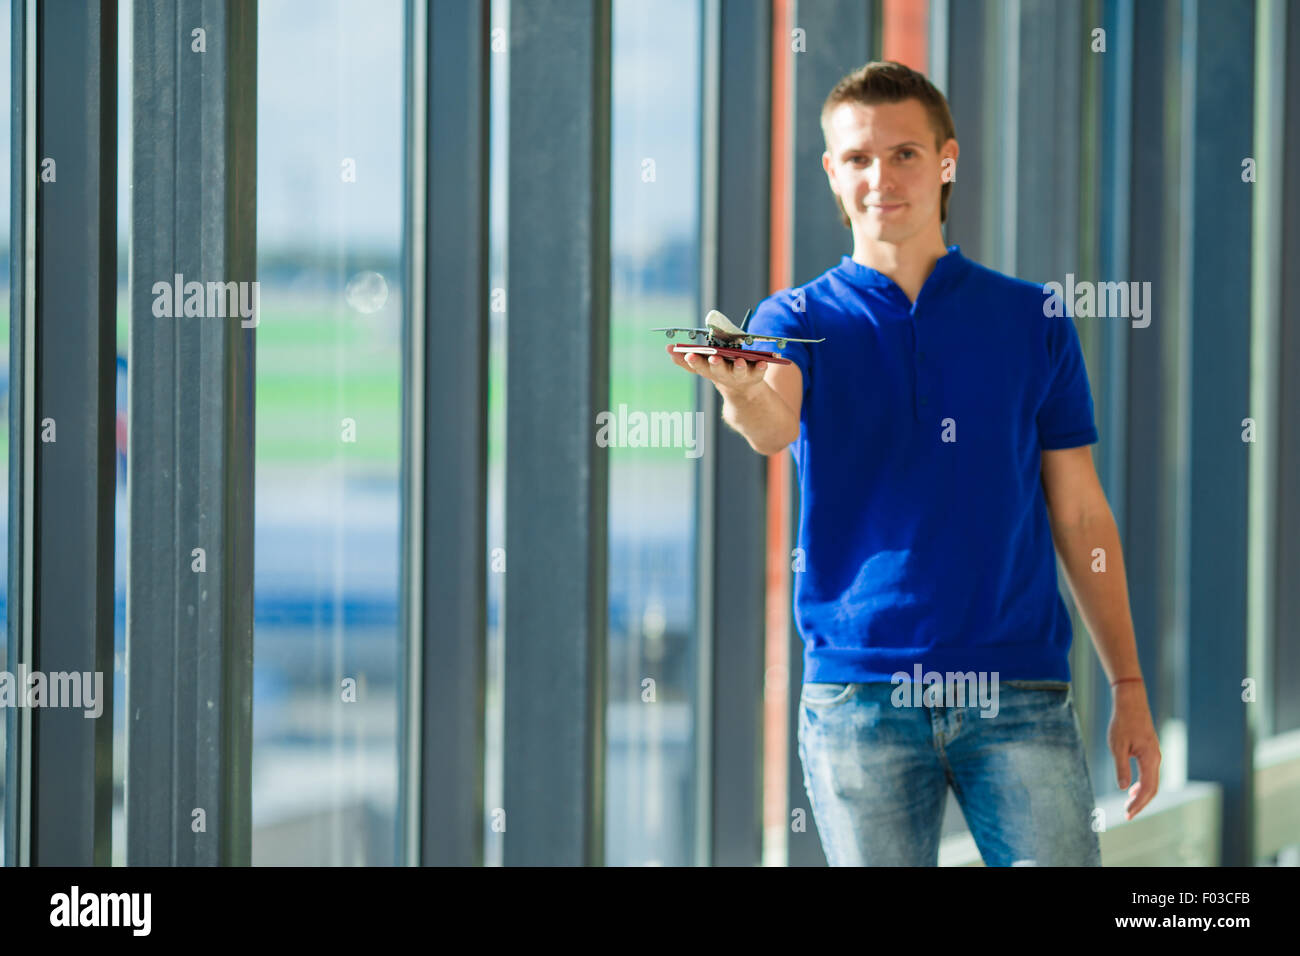 Young caucasian man holding passports and boarding pass at airport near window - Stock Image